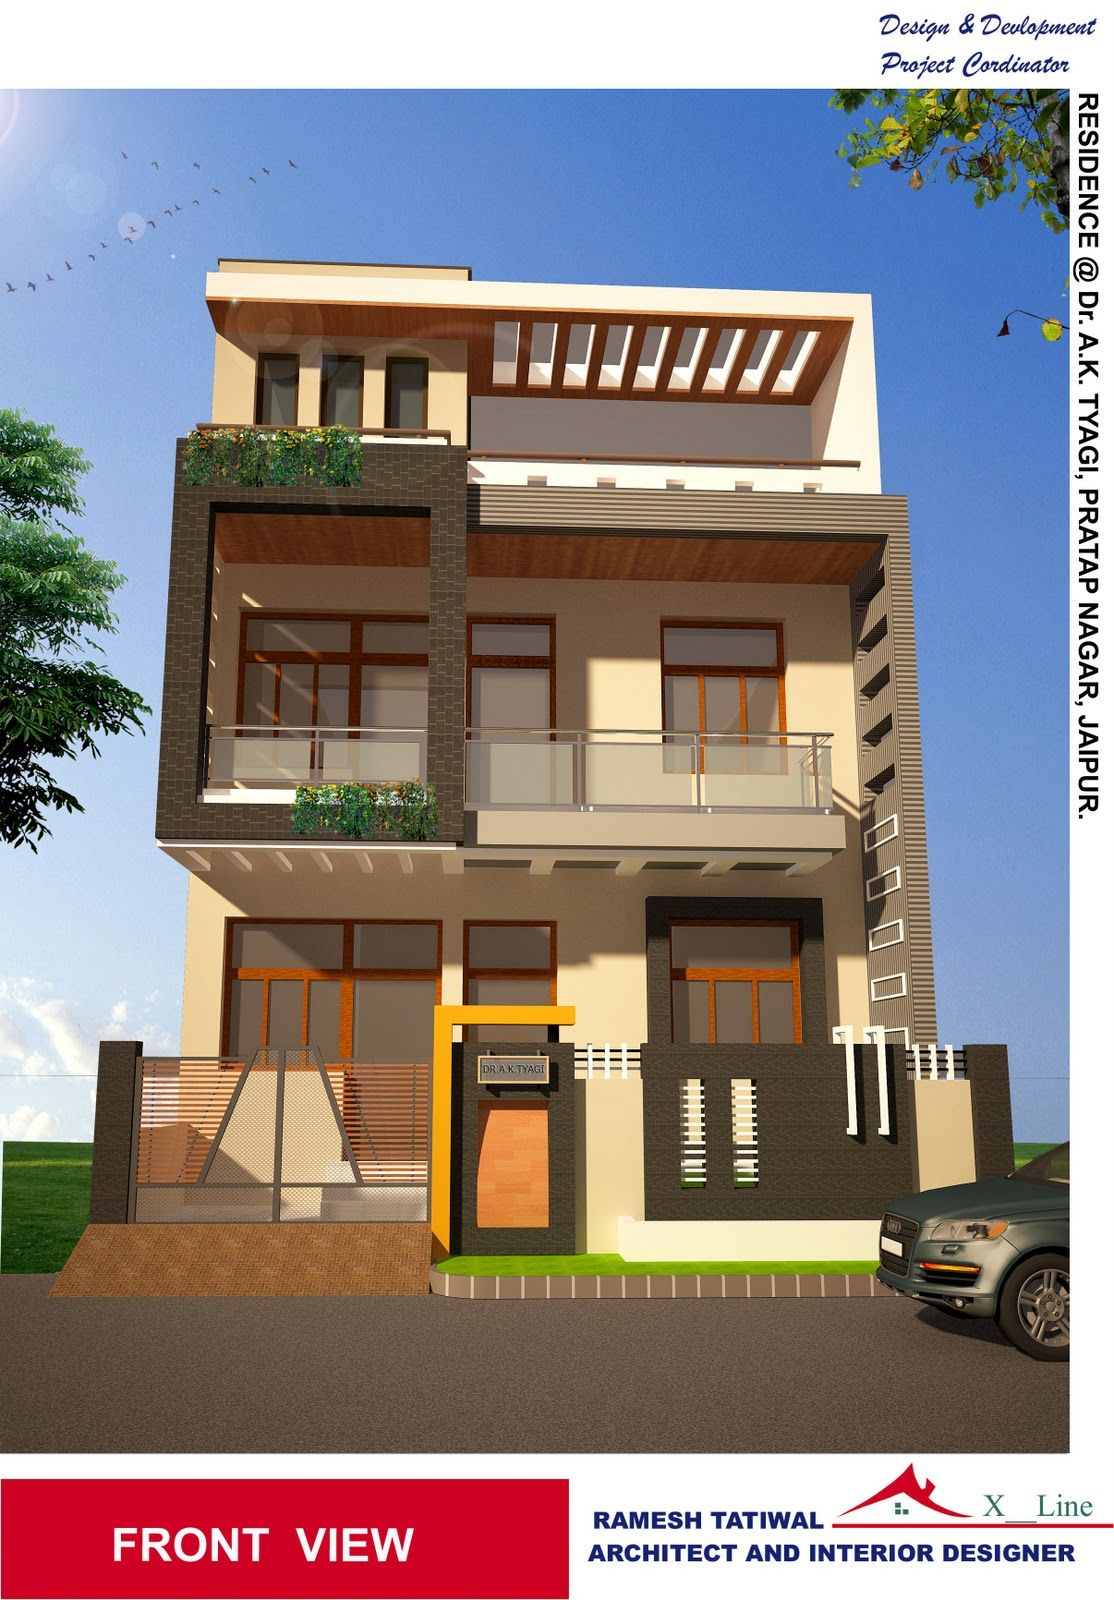 Housedesigns modern indian home architecture design from Simple house designs indian style